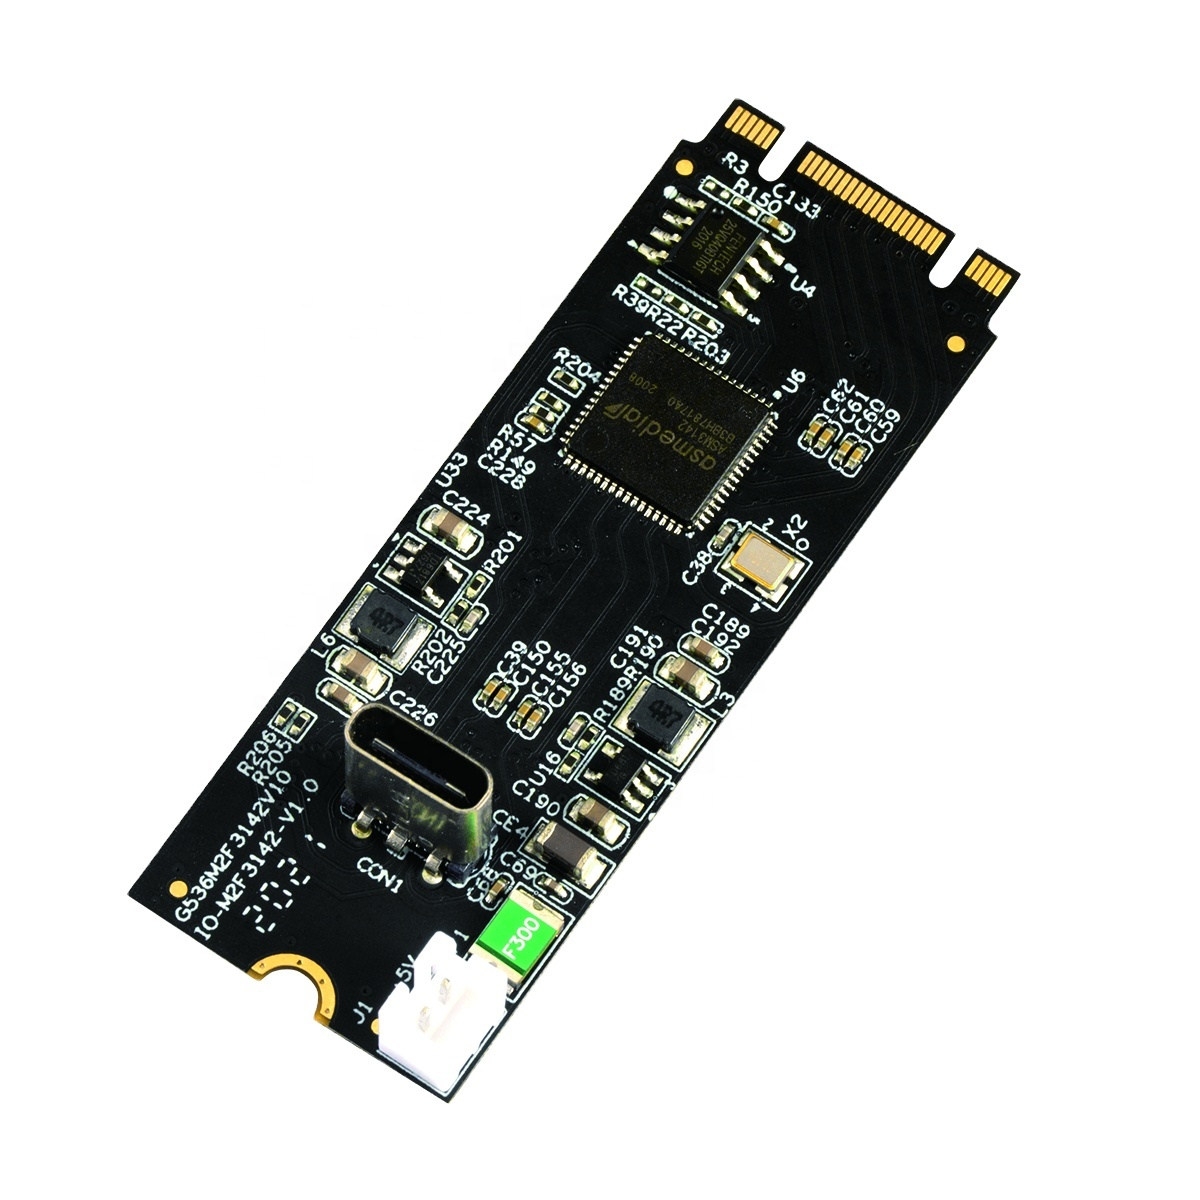 IOCREST M.2 B Key and M Key to USB3.2 Gen2 Type-C host high speed up to 10 Gbps controller Card 22x60mm Small Size